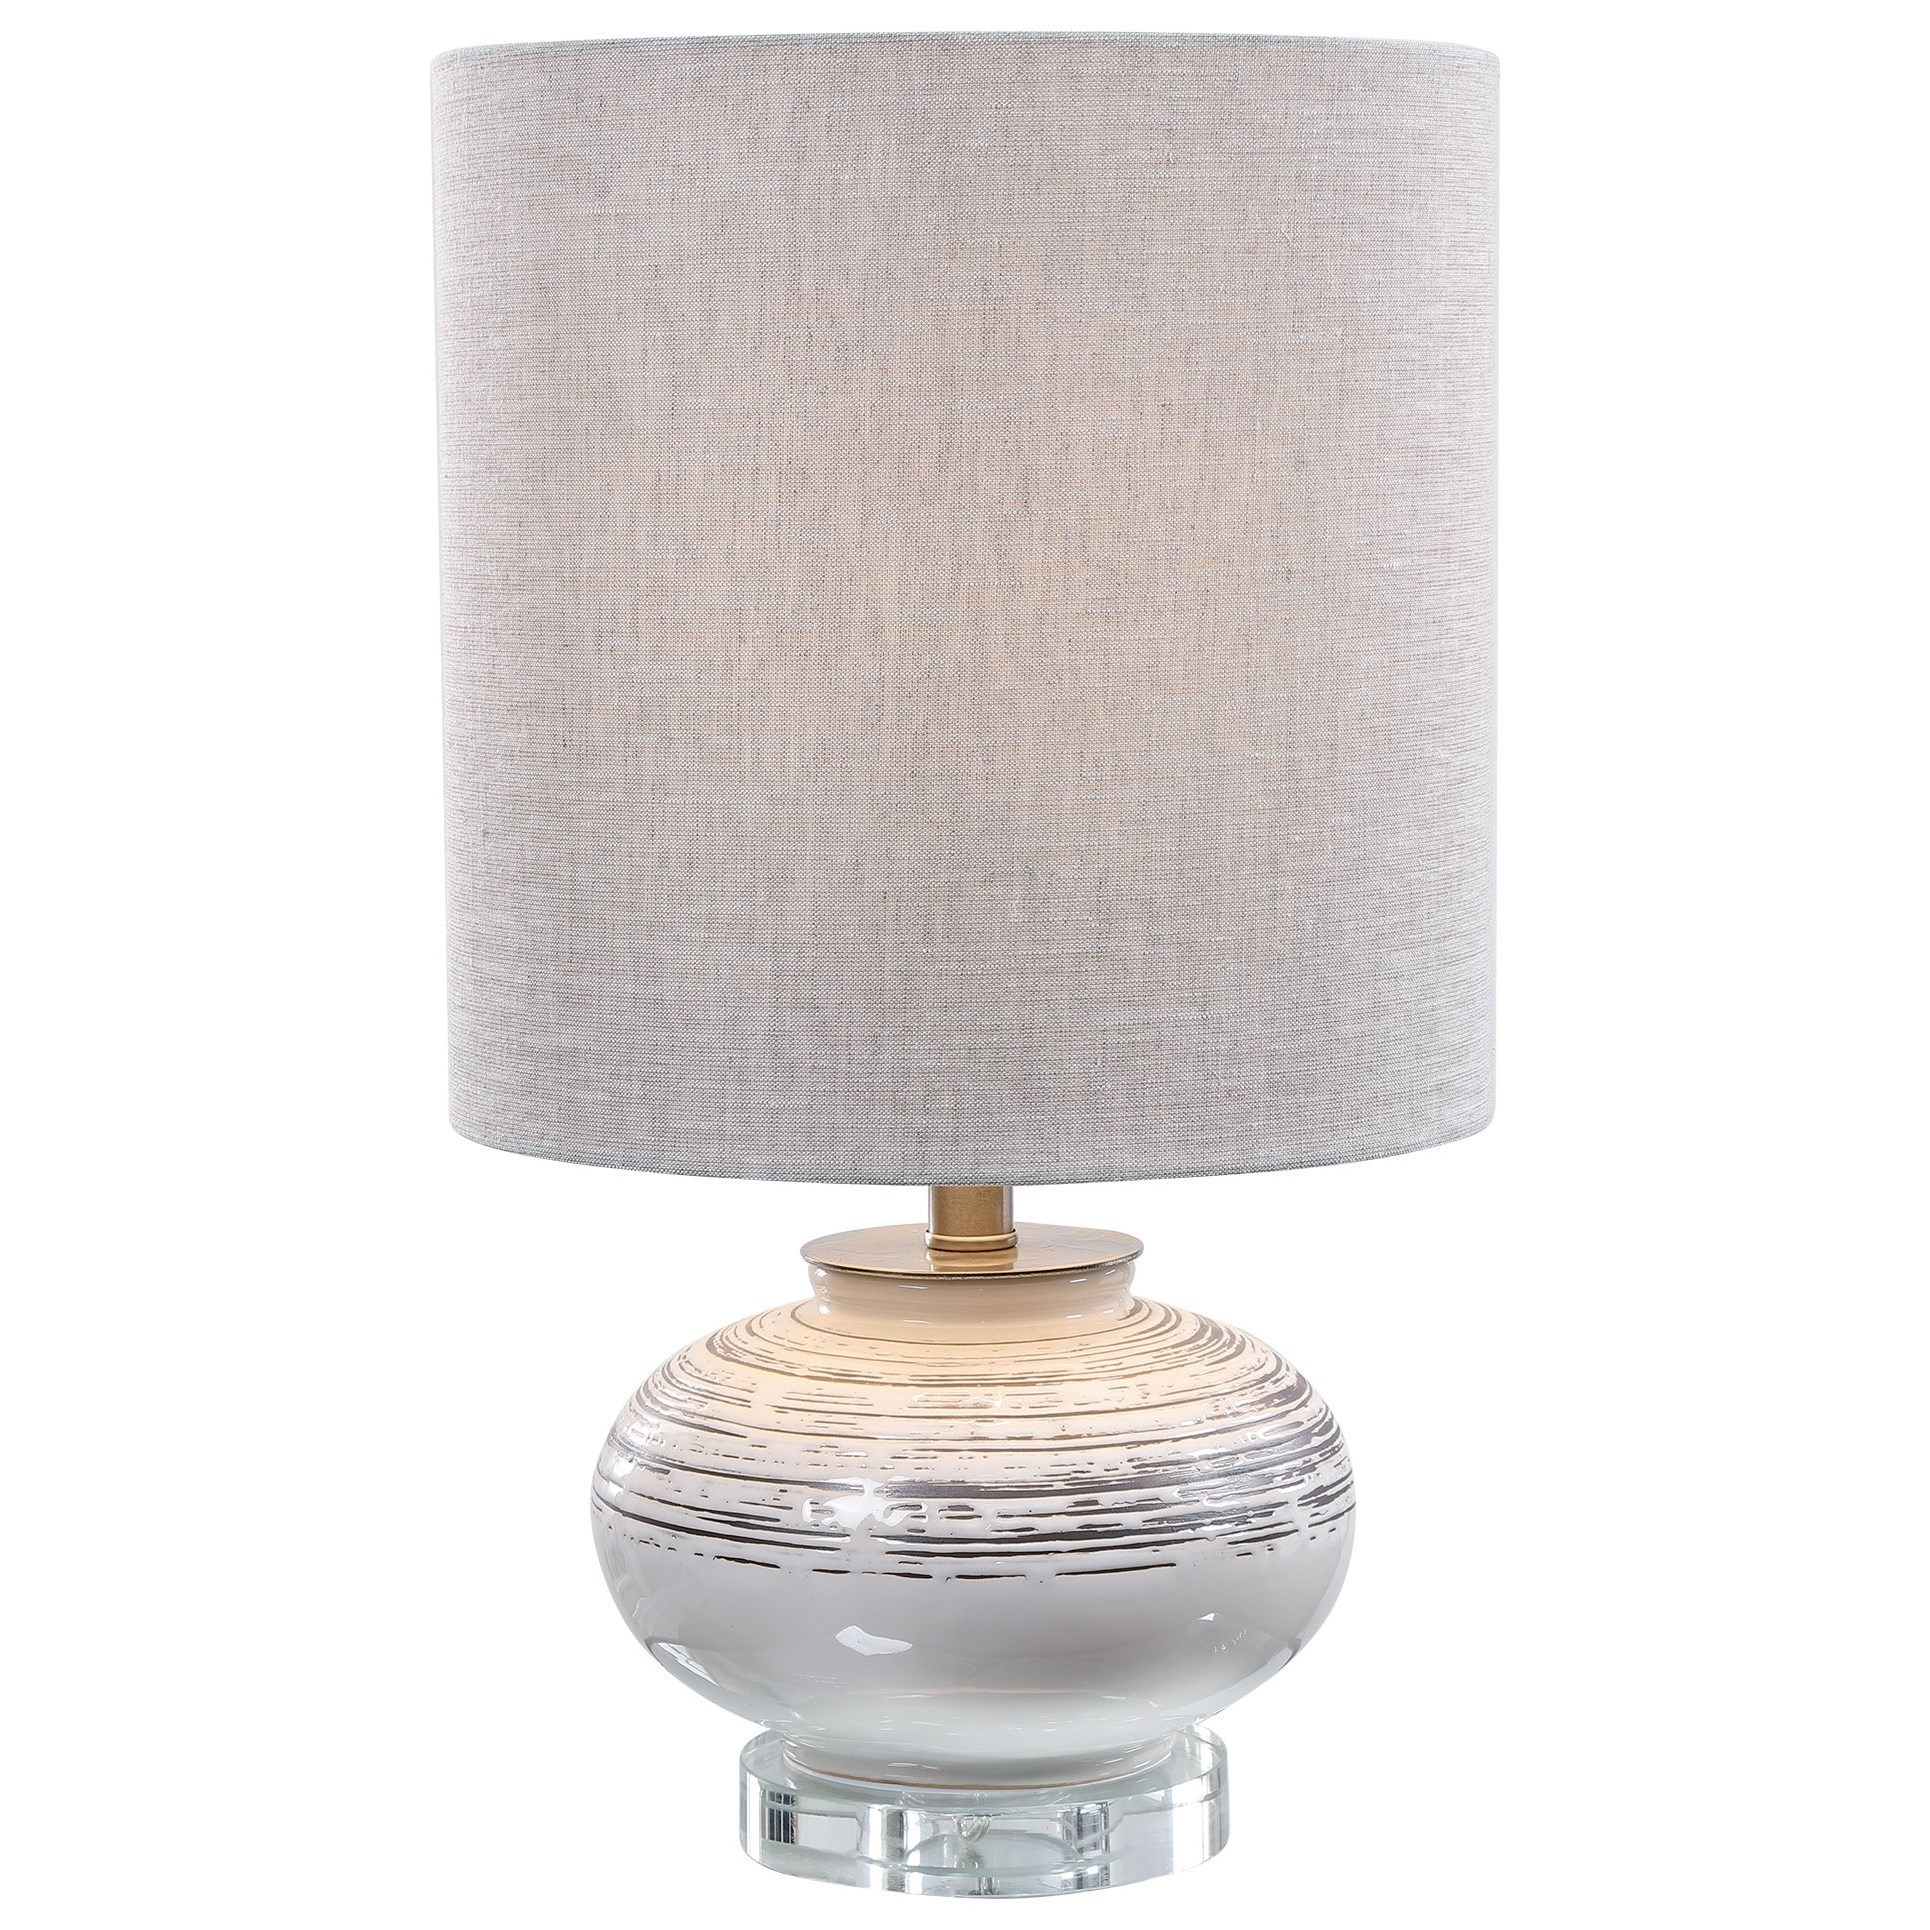 Accent Lamps Lenta Off-White Accent Lamp by Uttermost at Upper Room Home Furnishings